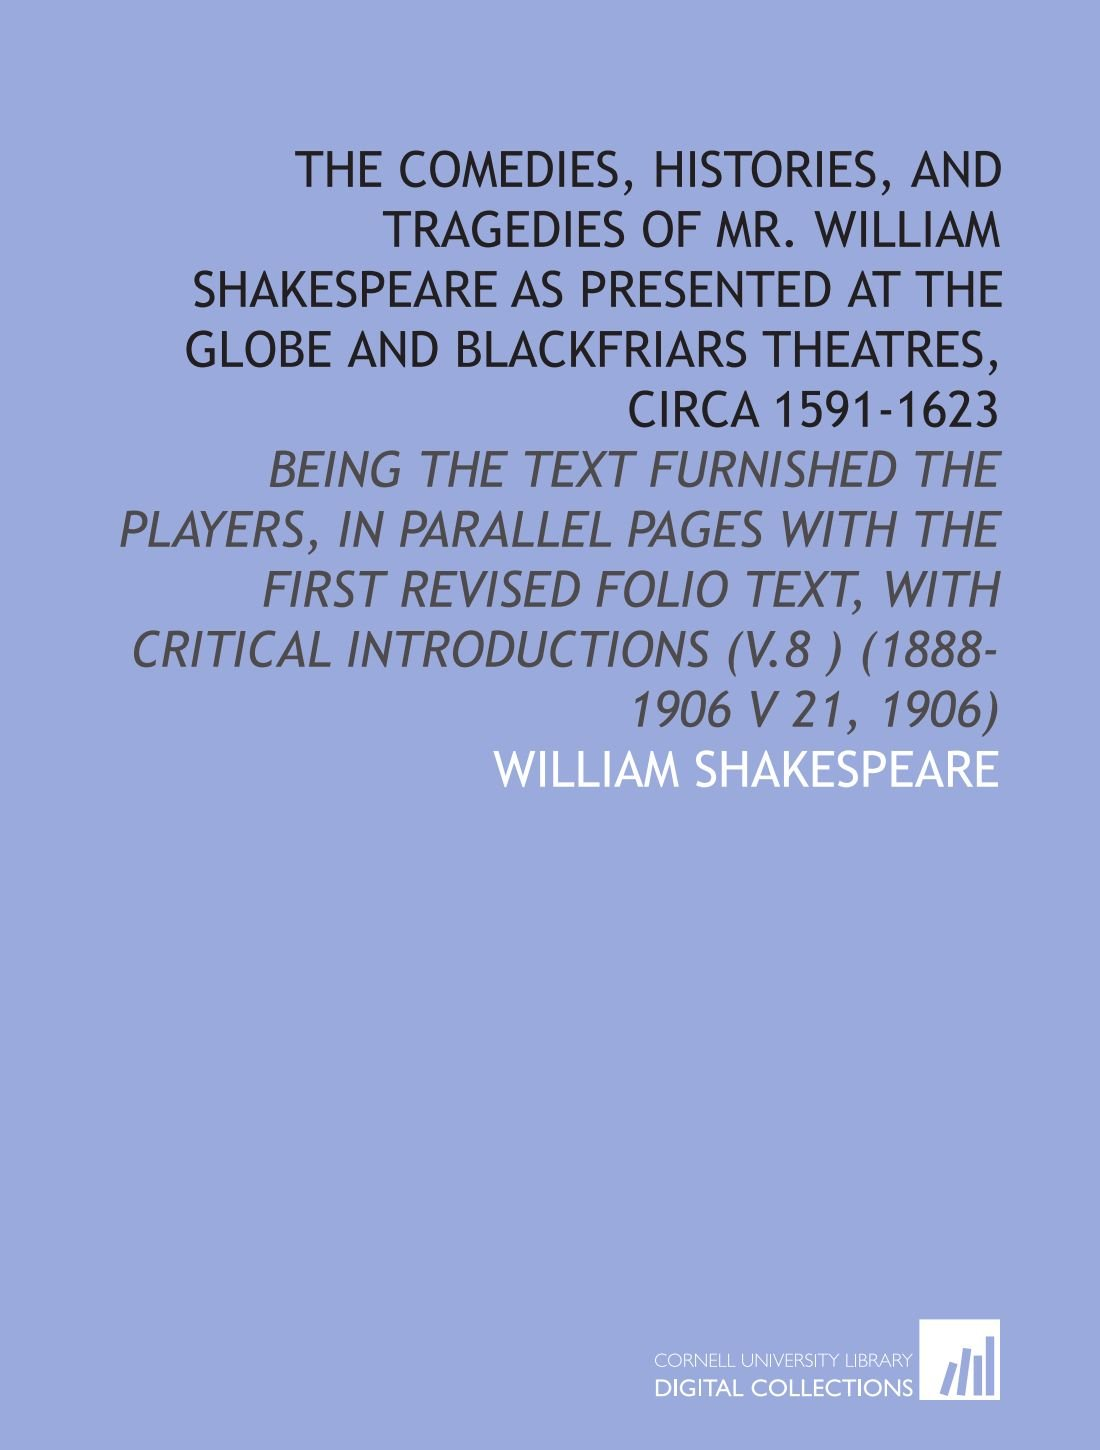 The Comedies, Histories, and Tragedies of Mr. William Shakespeare As Presented at the Globe and Blackfriars Theatres, Circa 1591-1623: Being the Text ... Introductions (V.8 ) (1888-1906 V 21, 1906) ebook